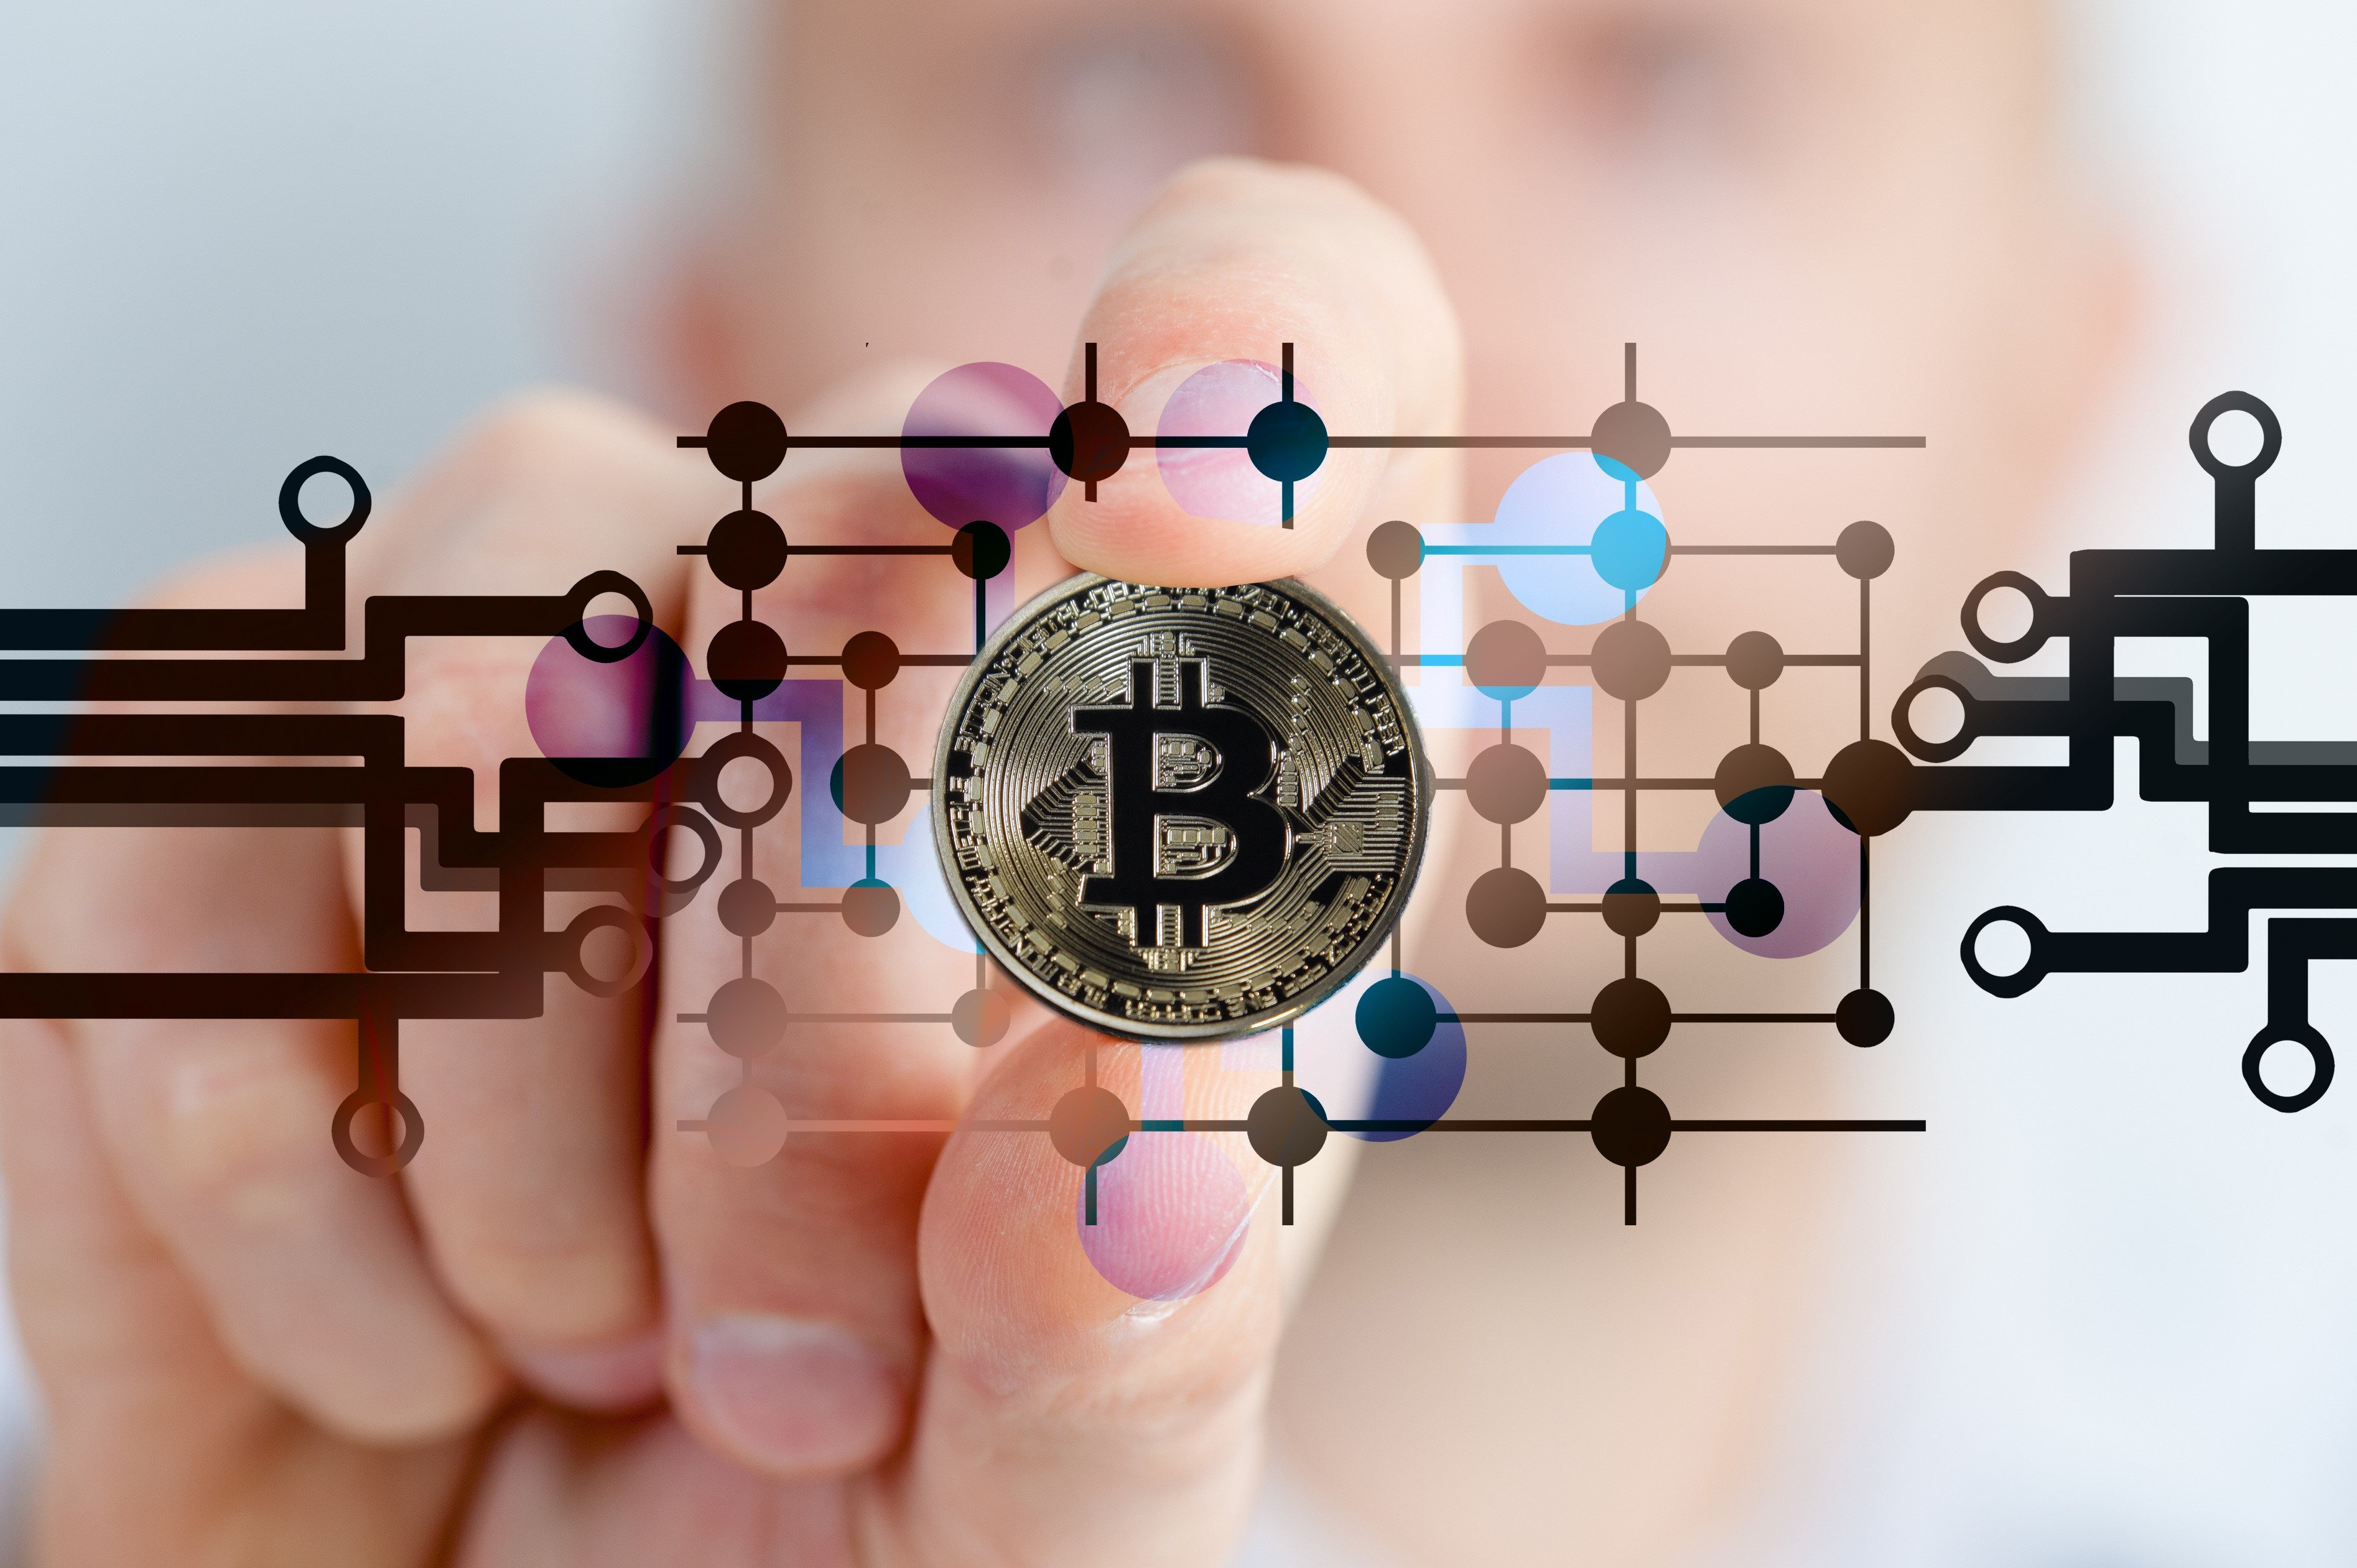 Bitcoin: A Fork in the Road | Munro's Accountants and Advisors